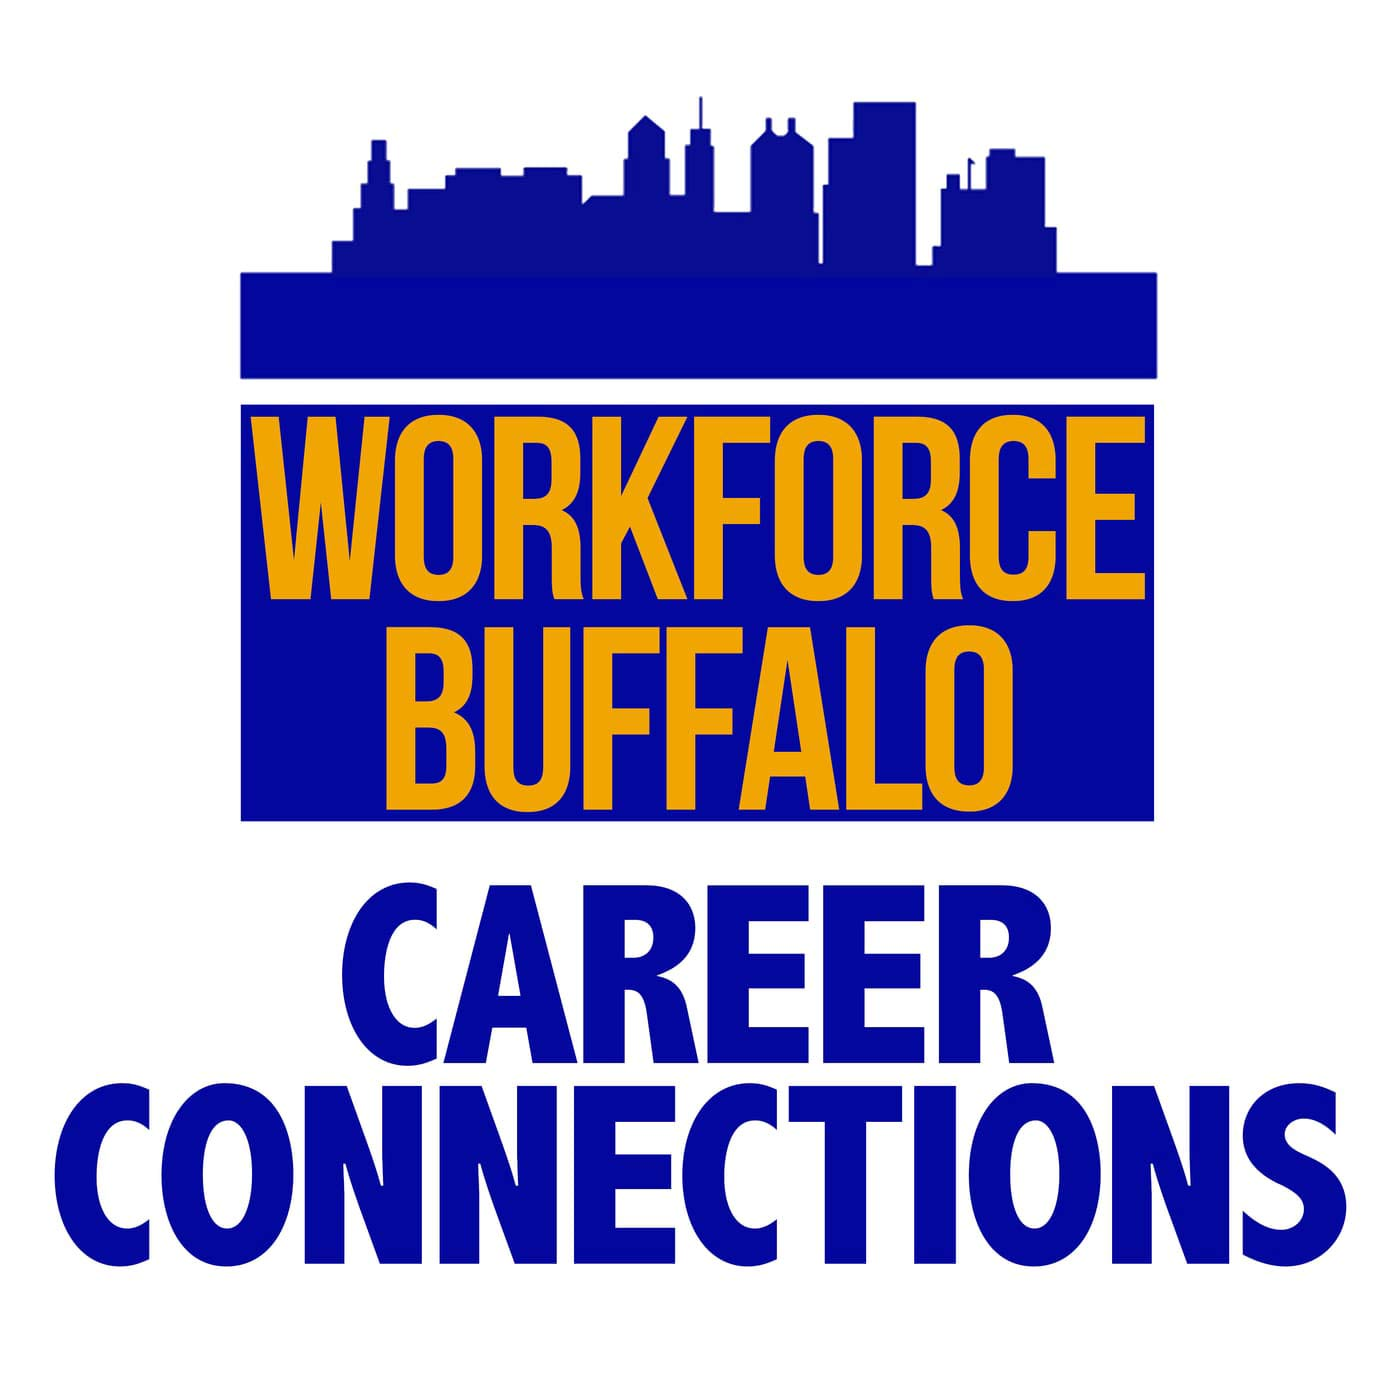 Workforce Buffalo Career Connections